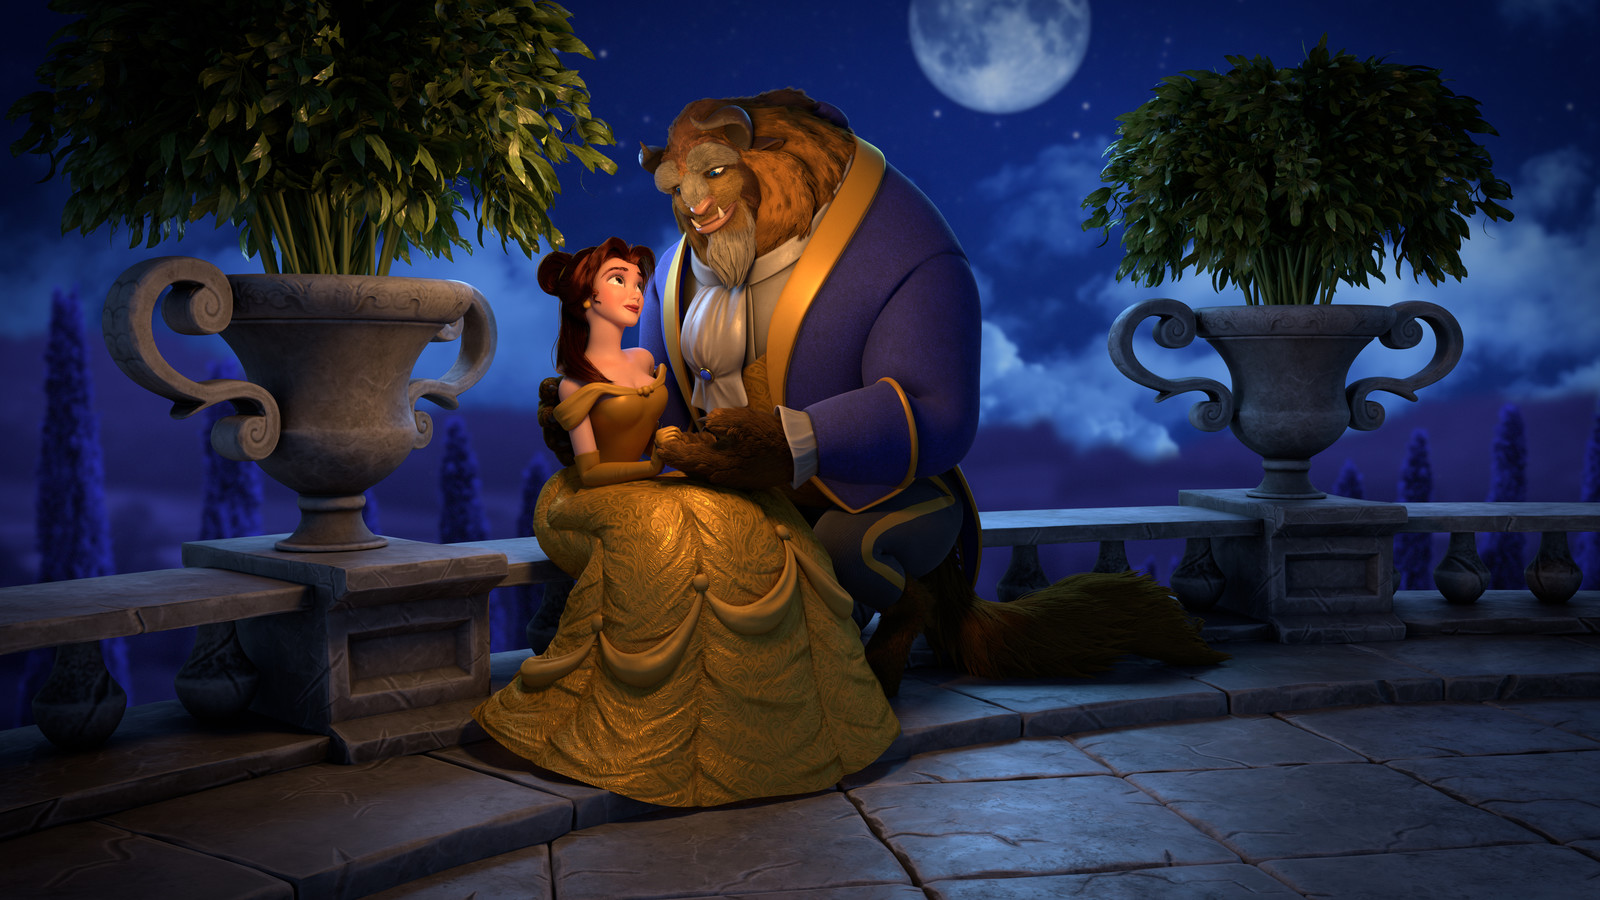 Beauty and the Beast - Final Image